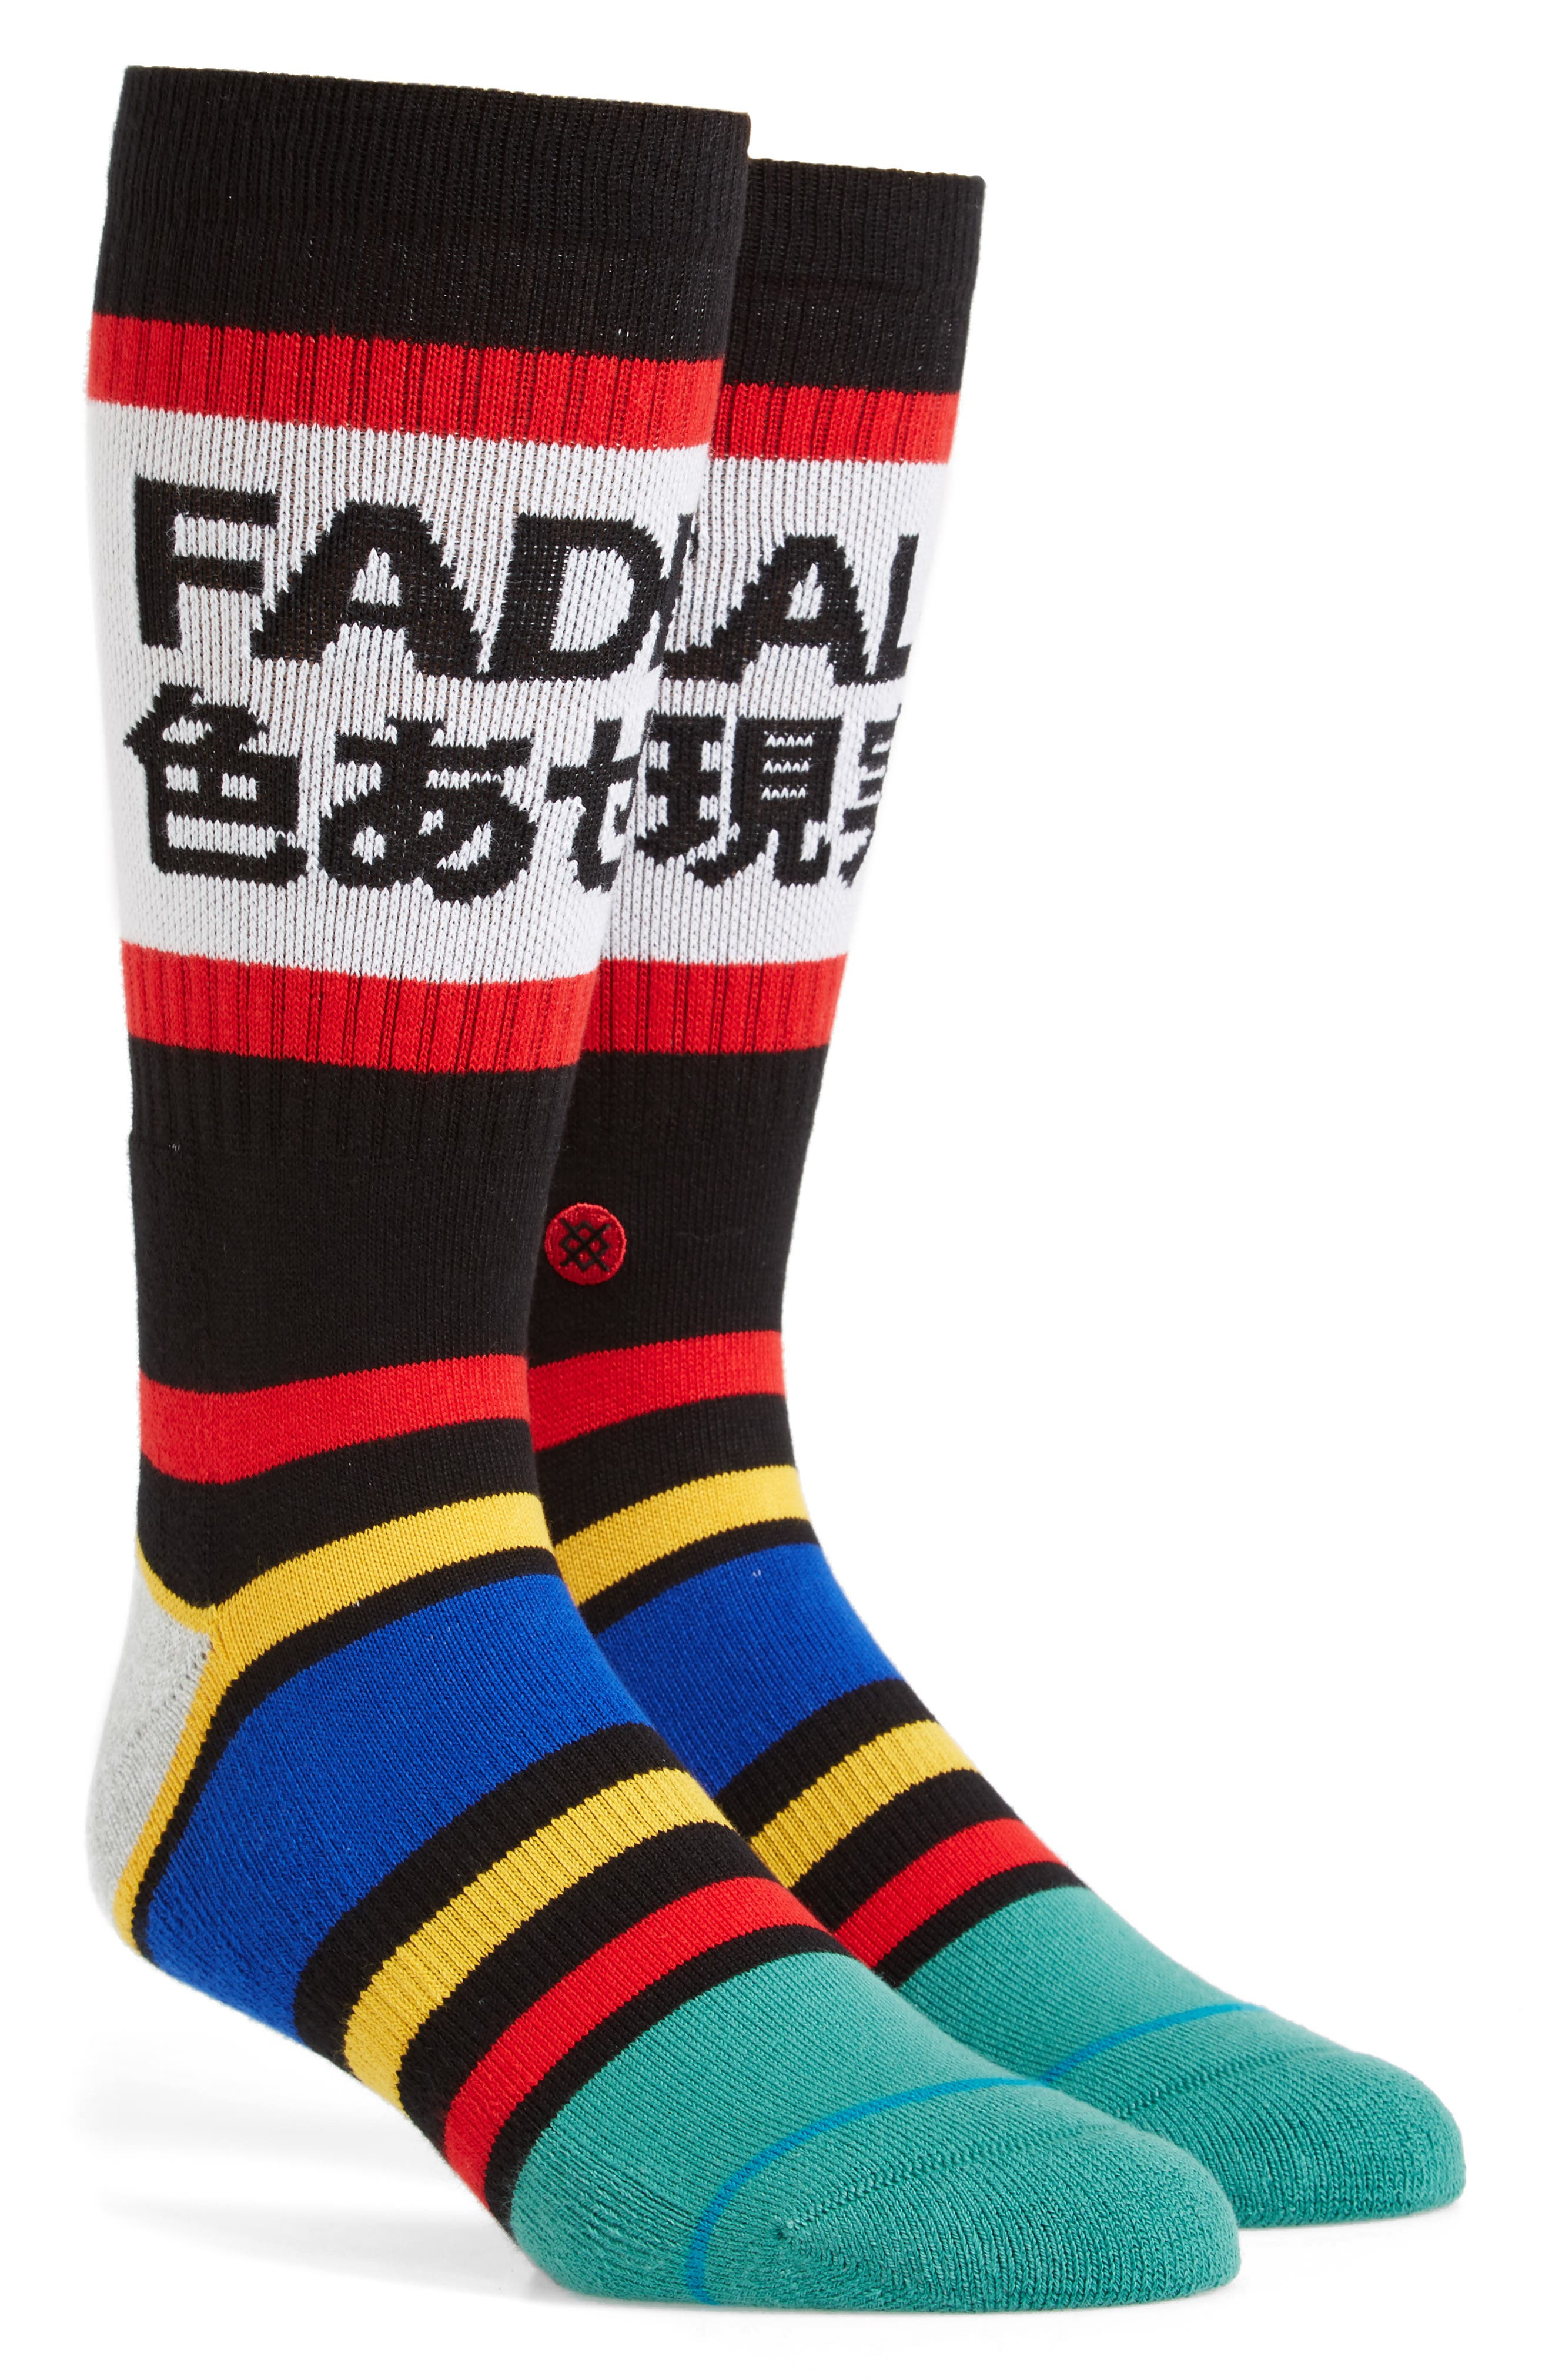 Main Image - Stance Fade Out Crew Socks